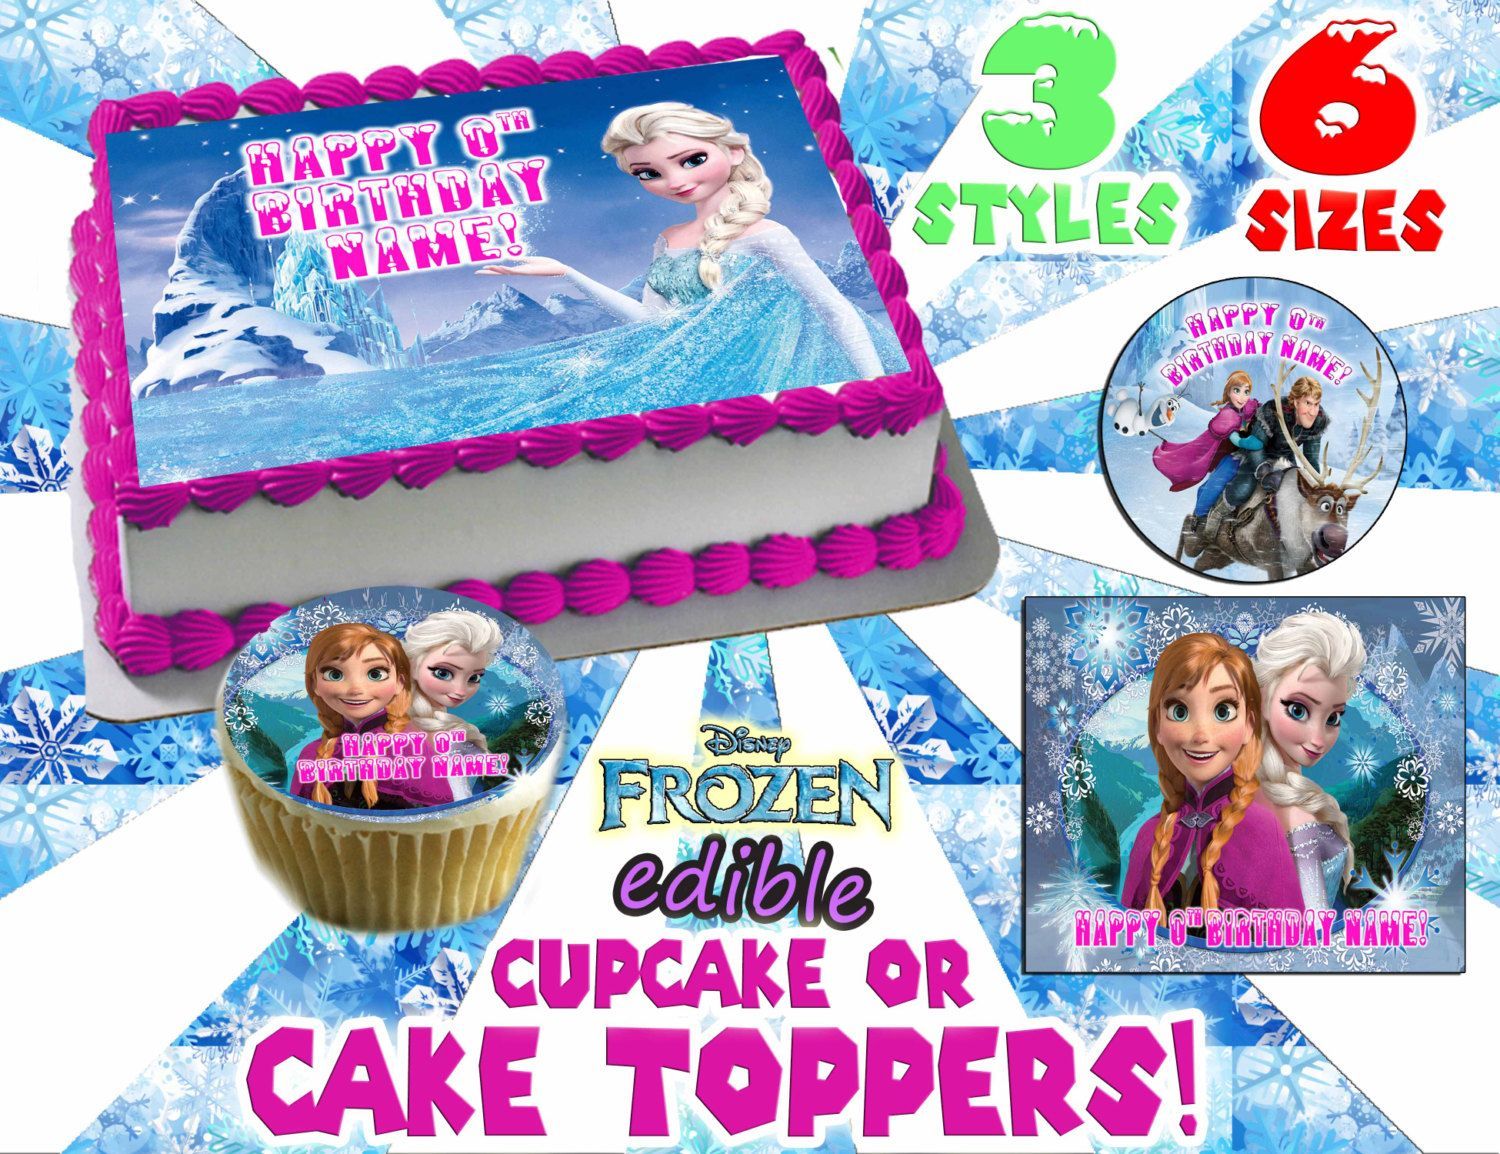 Frozen CAKE TOP edible or cupcake toppers by Pictures4Cakes 800